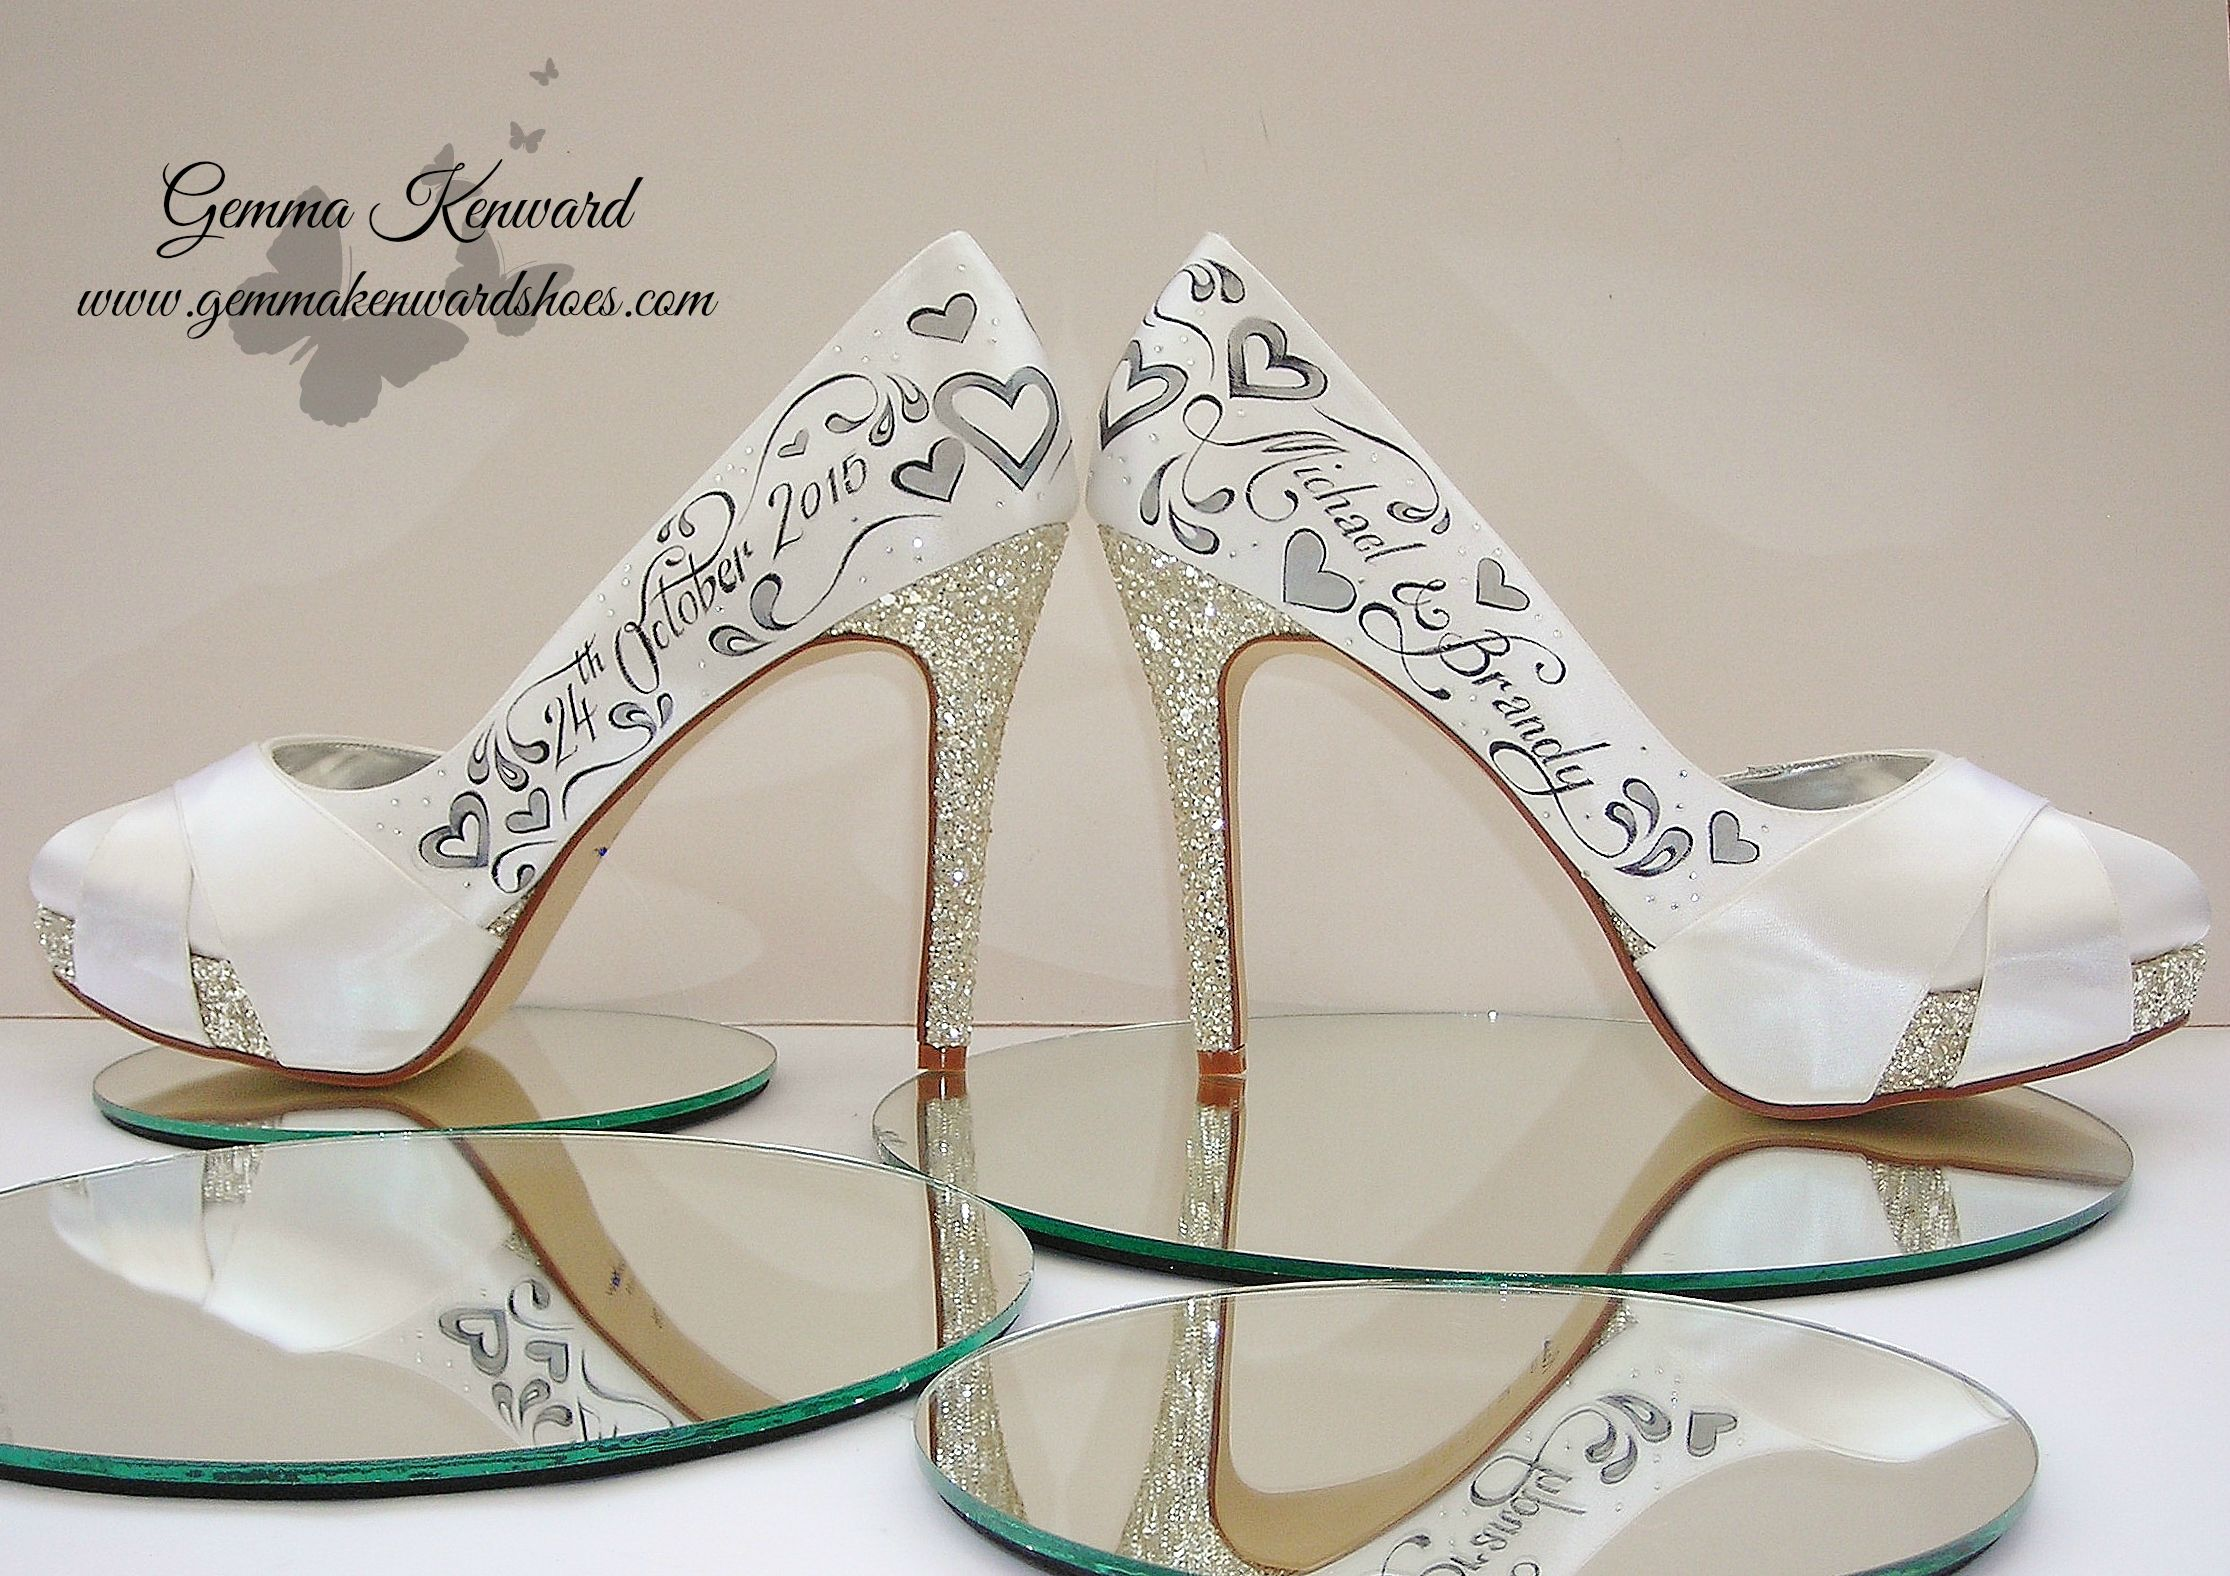 Wedding shoes personalised with silver hearts and diamantes for Brandy and Michael, our lovely competition winners!